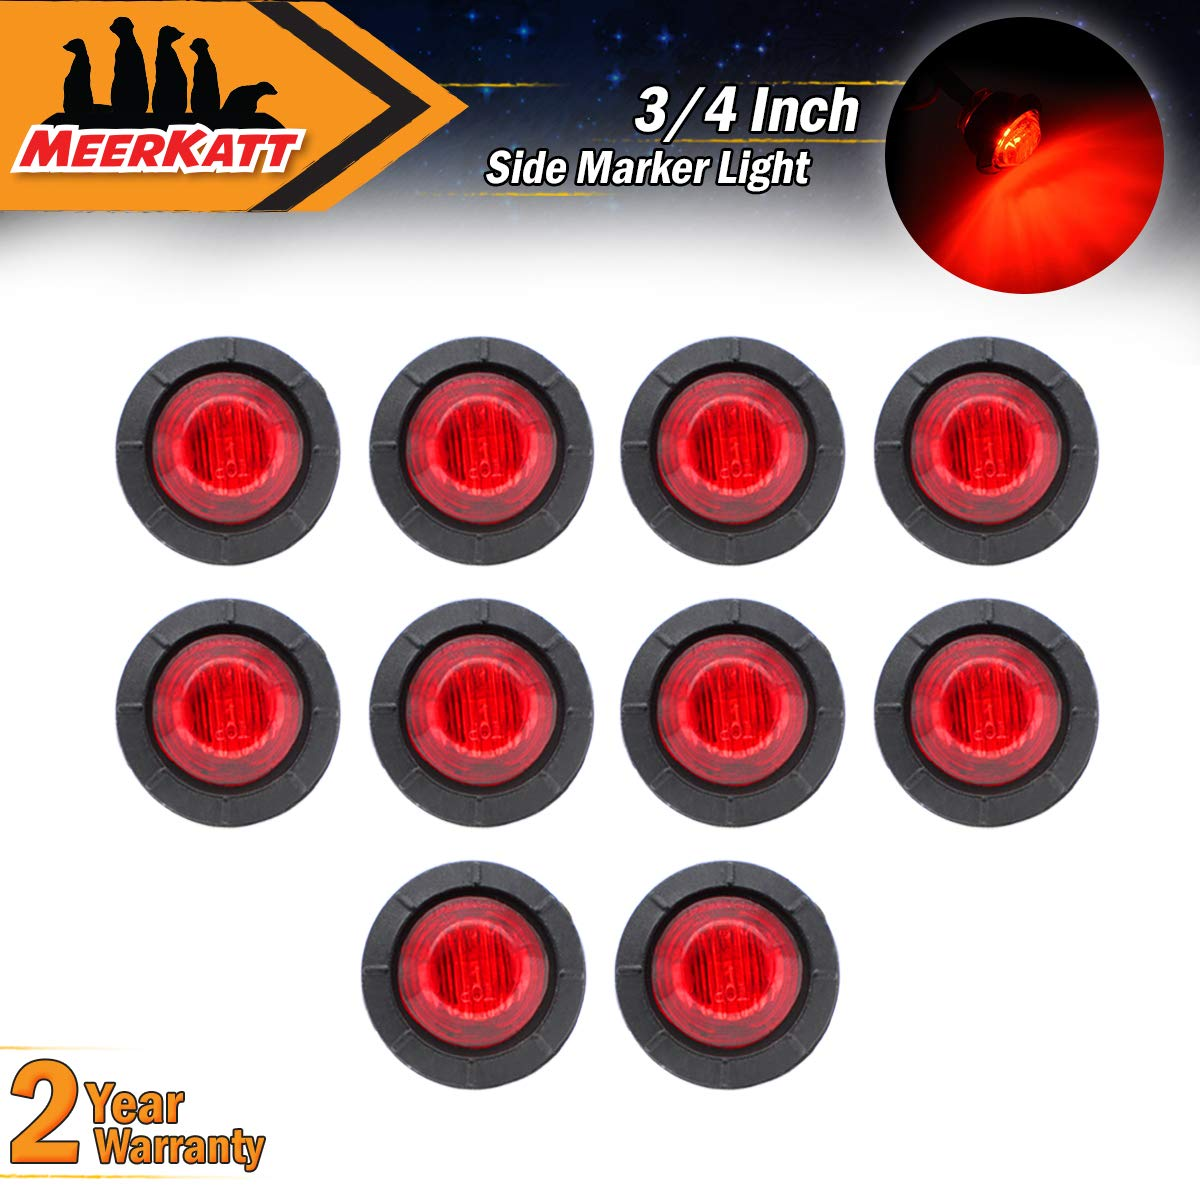 Meerkatt (Pack of 10) 3/4' Inch Mini Round 5 Amber + 5 Red LED Side Marker Flush Mount Spot Kit Clearance Lamp Indicator Light Universal Waterproof Trailer Boat Bus Caravan Truck Jeep Lorry RV 12V DC